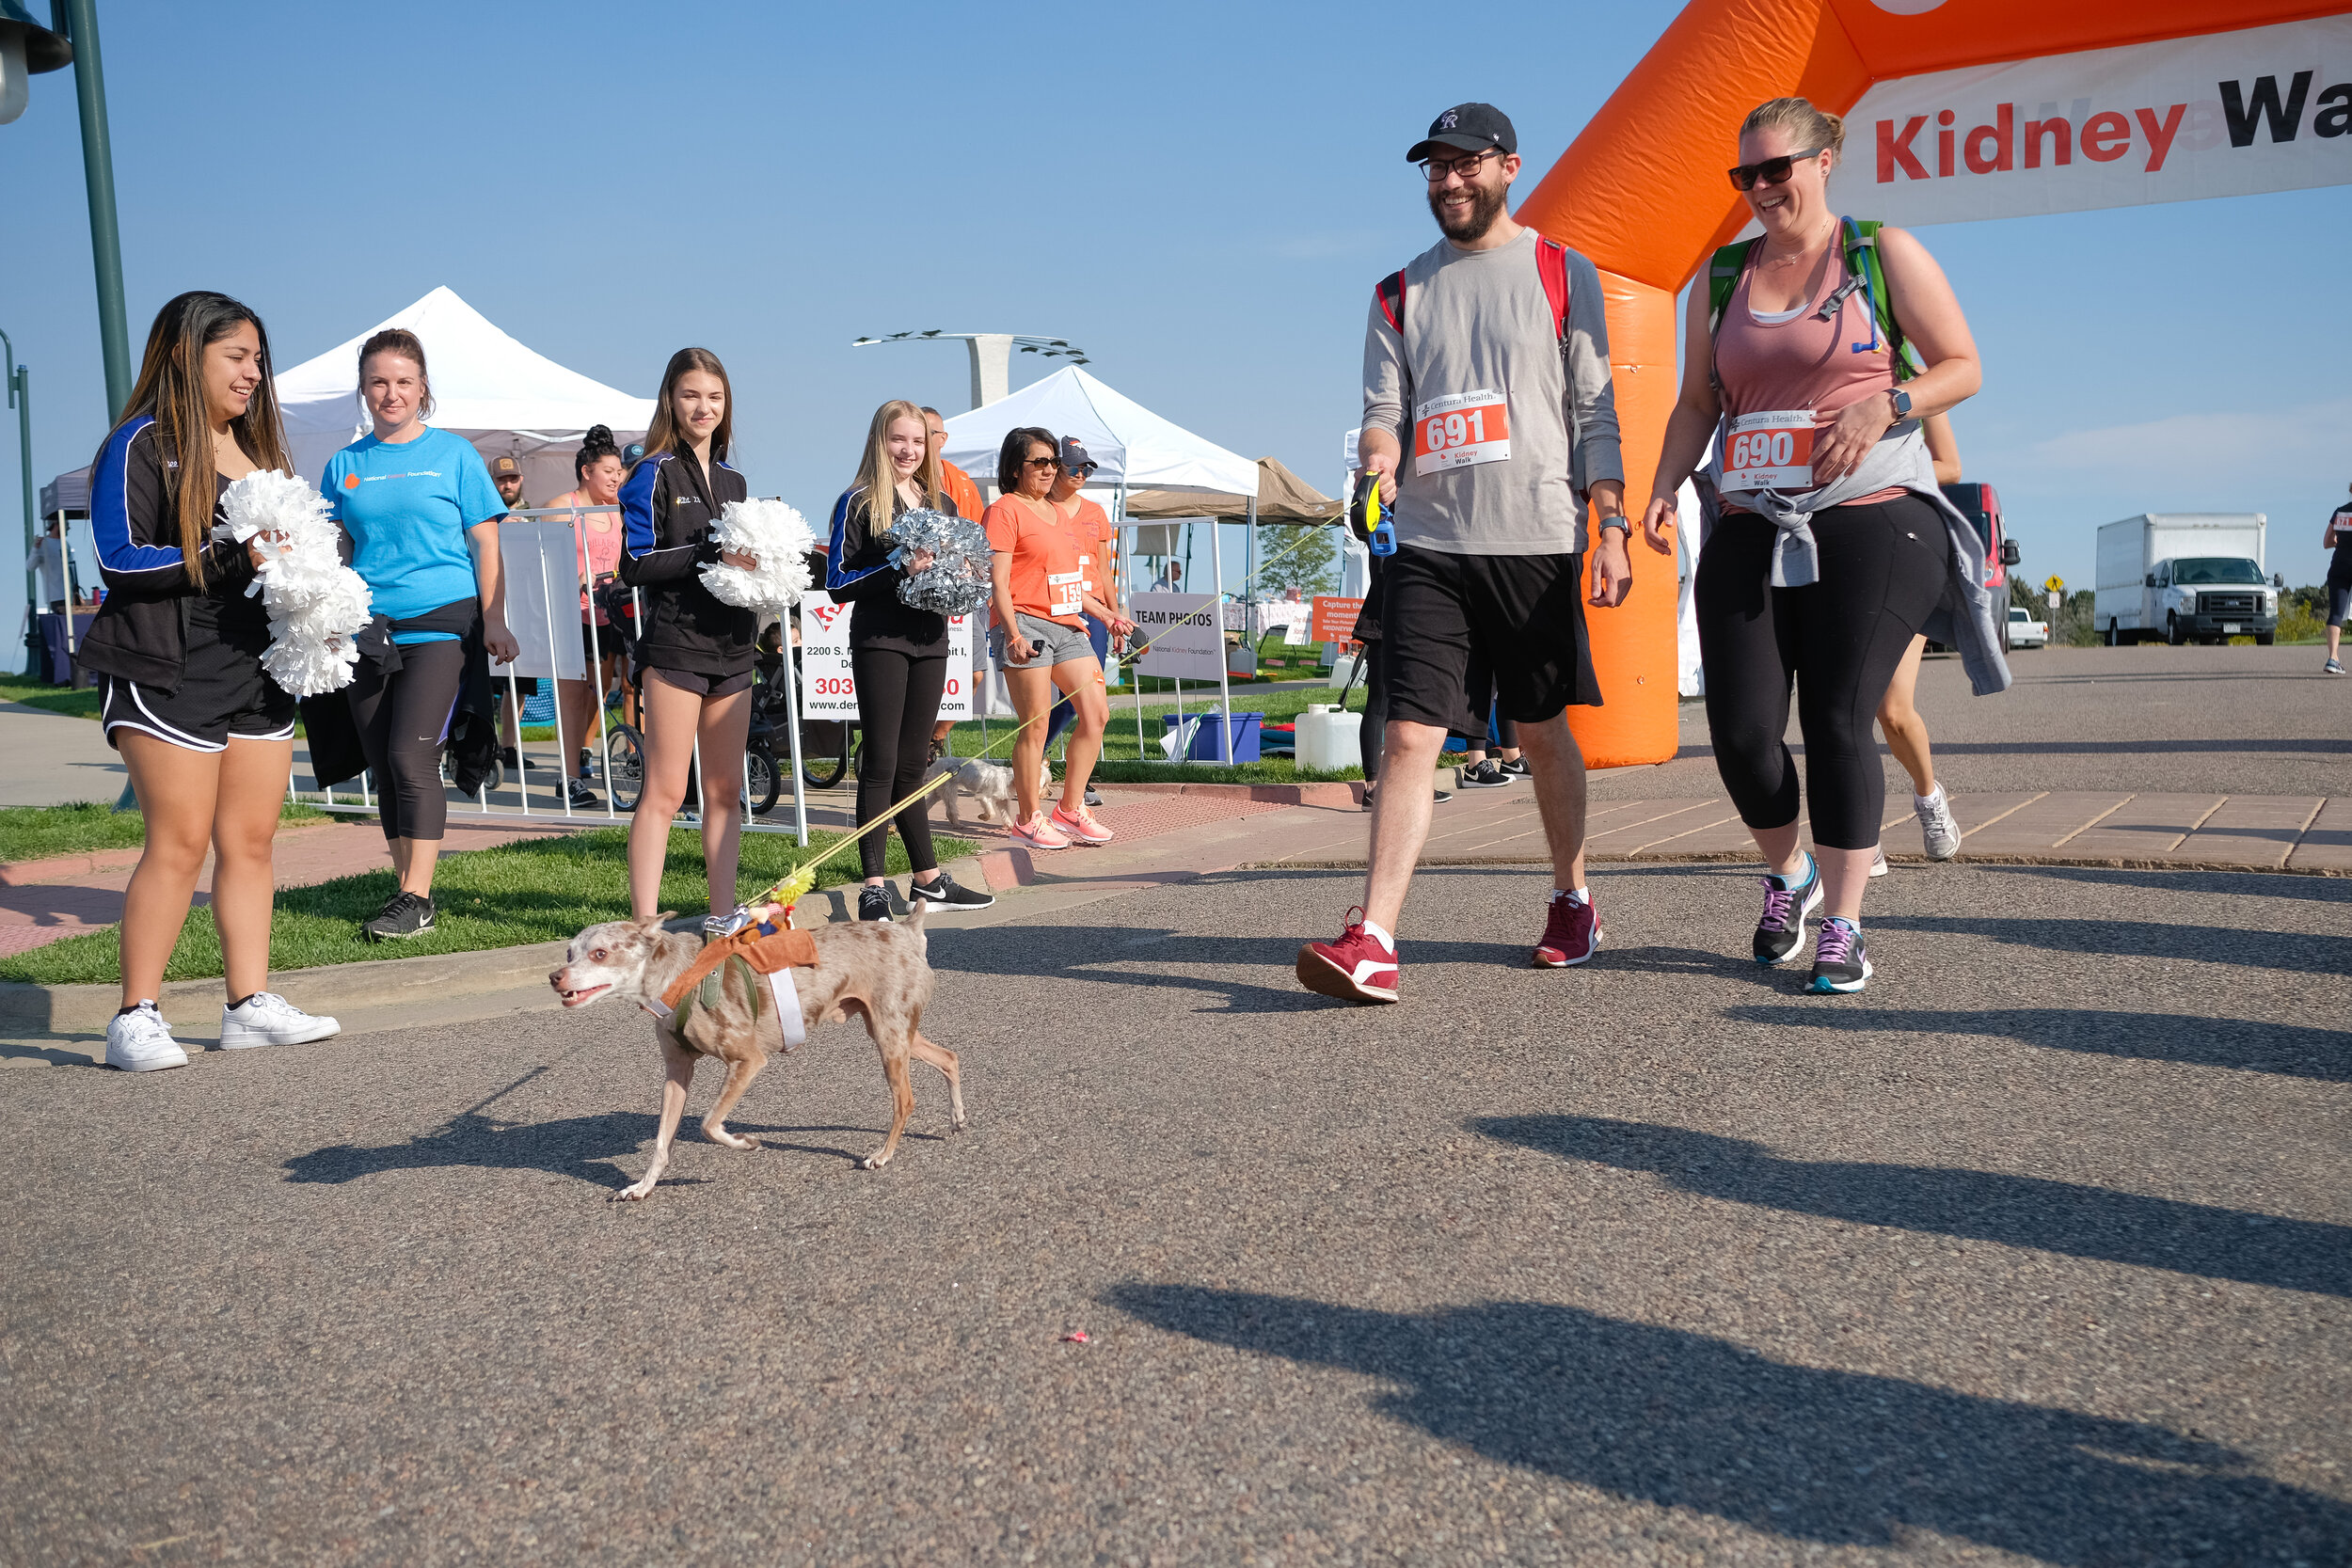 Denver Kidney Walk-106.jpg